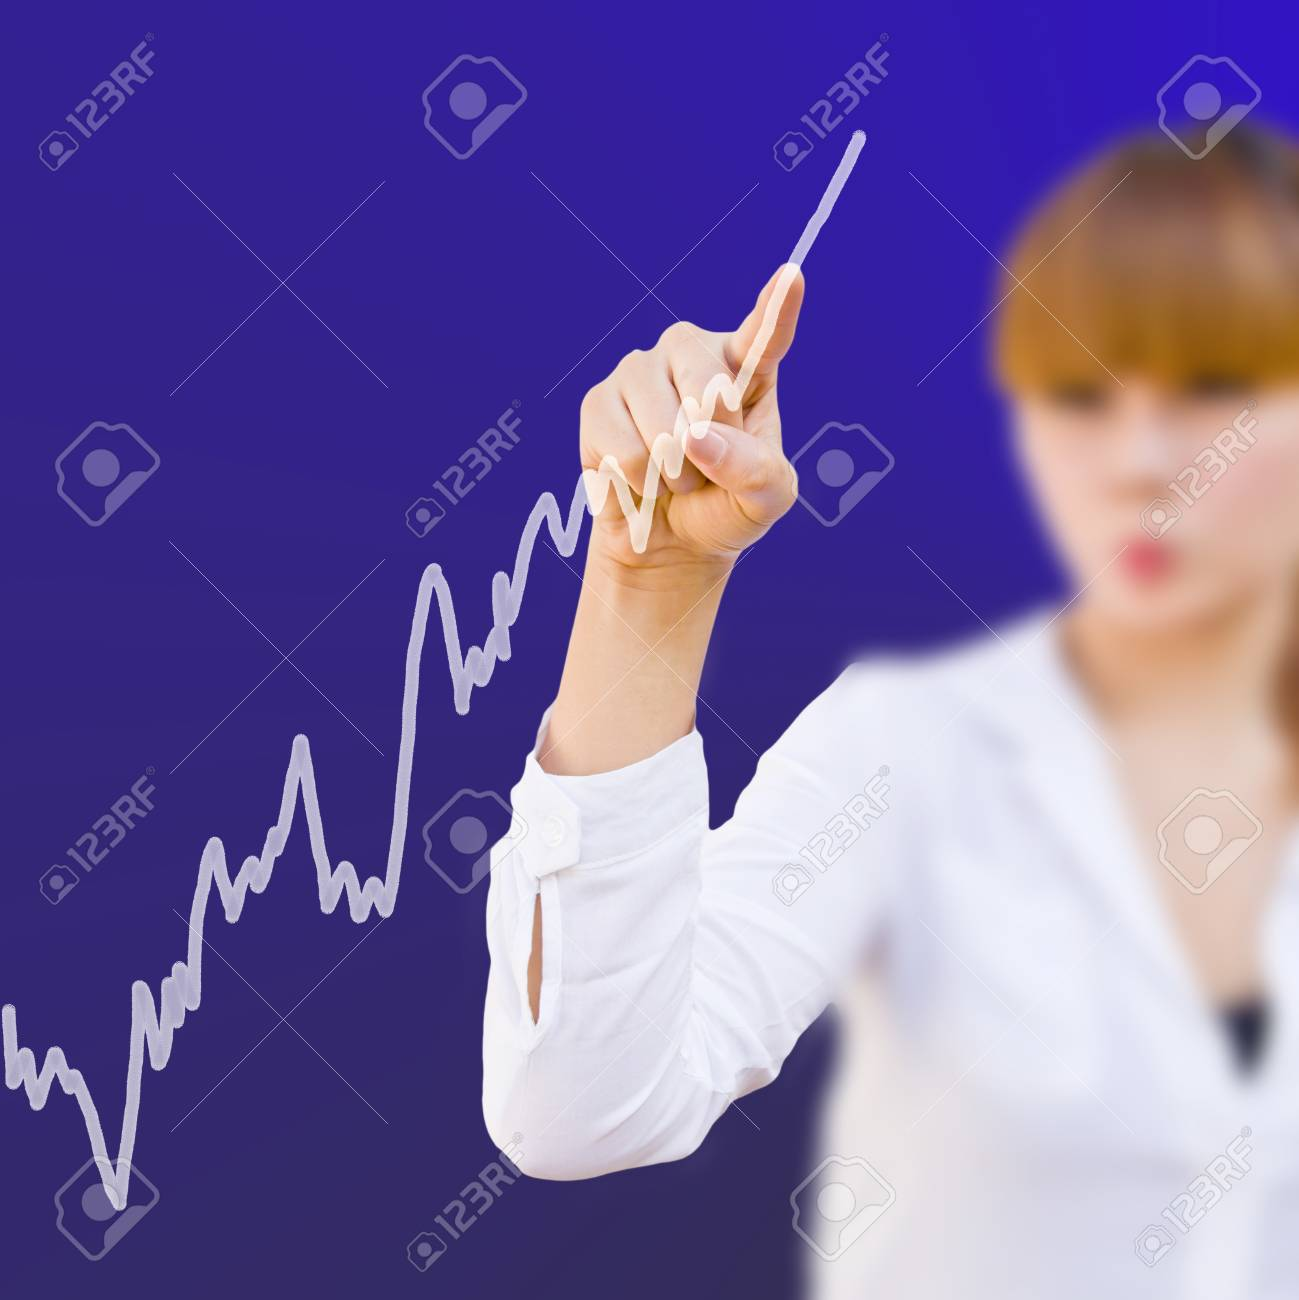 Analyzing stock market graph on a touch with businesswoman Stock Photo - 11738019